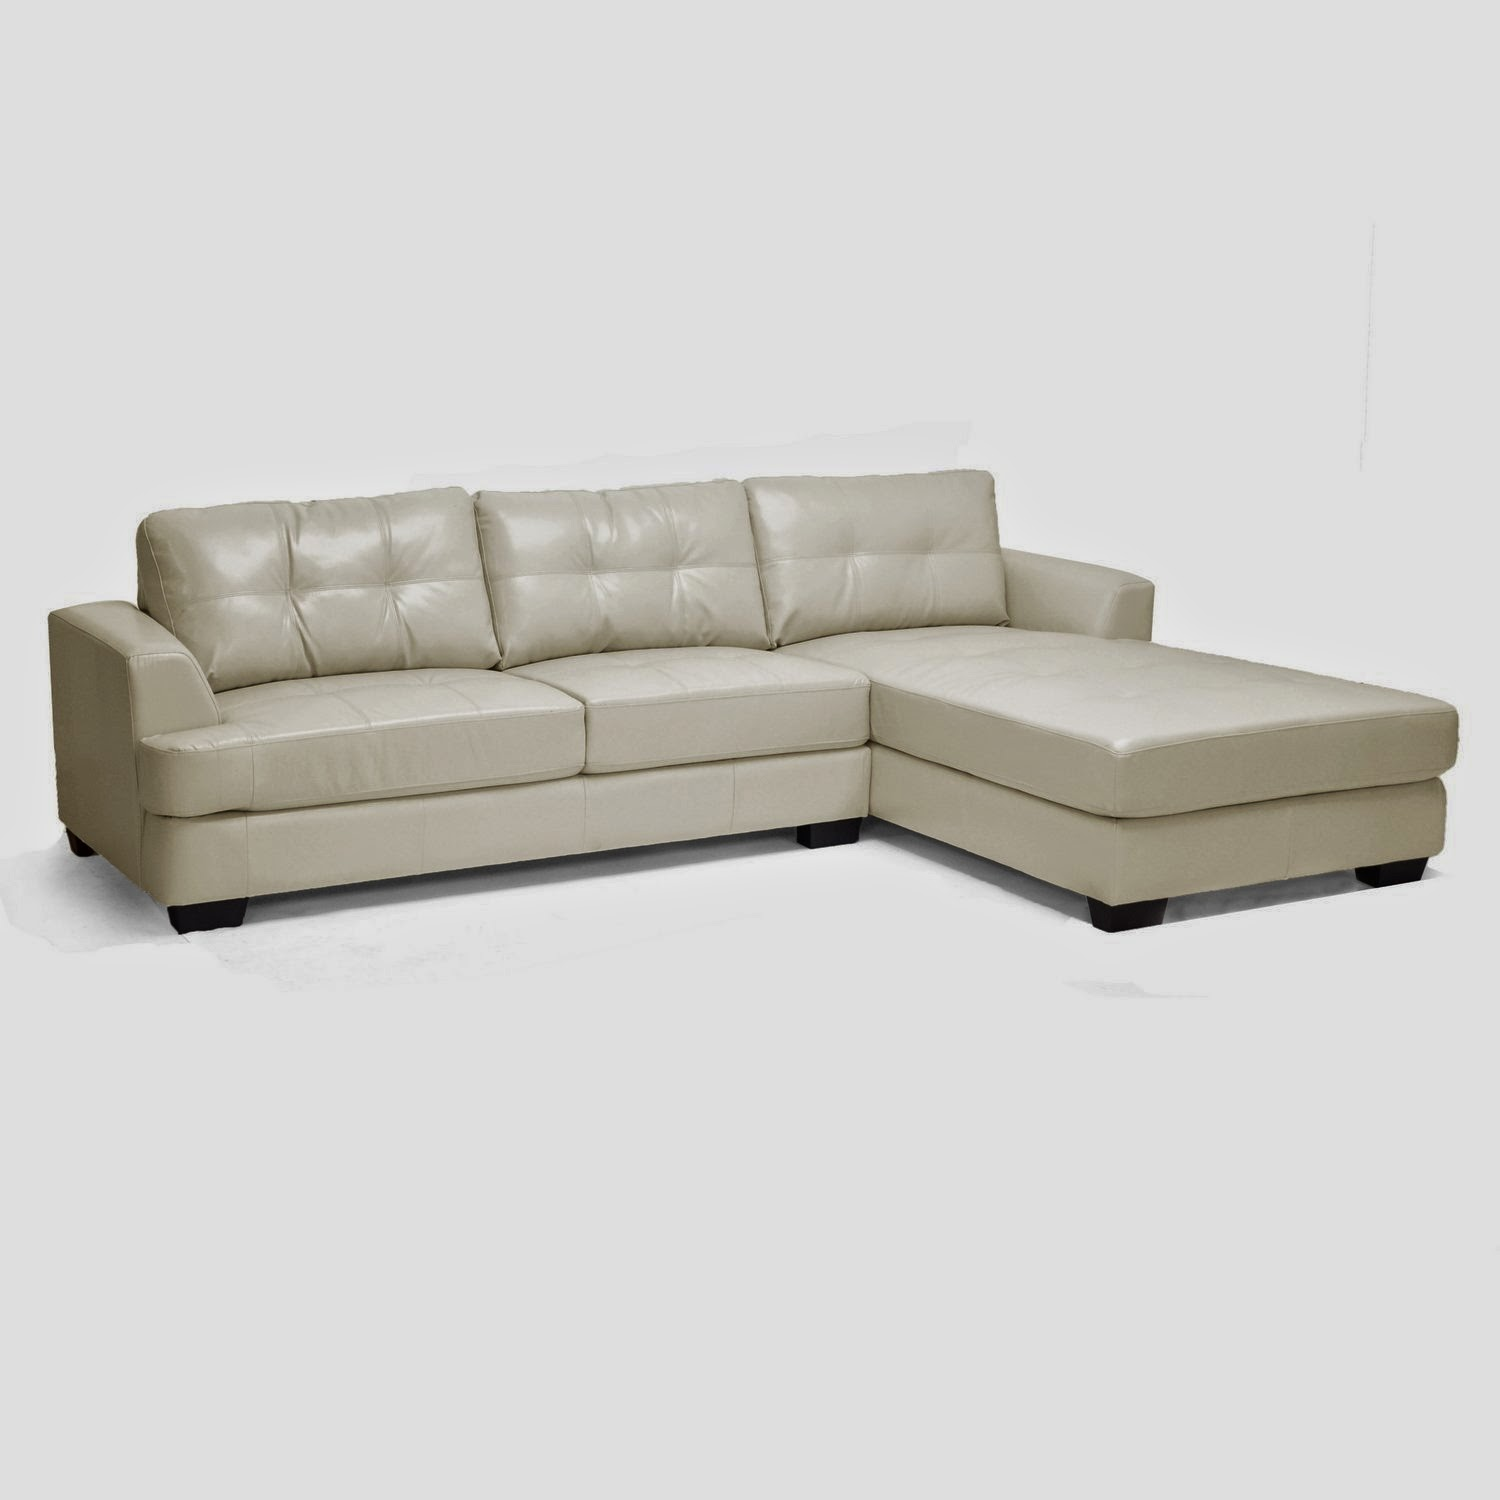 Couch with chaise leather couch with chaise lounge for Chaise longe sofa